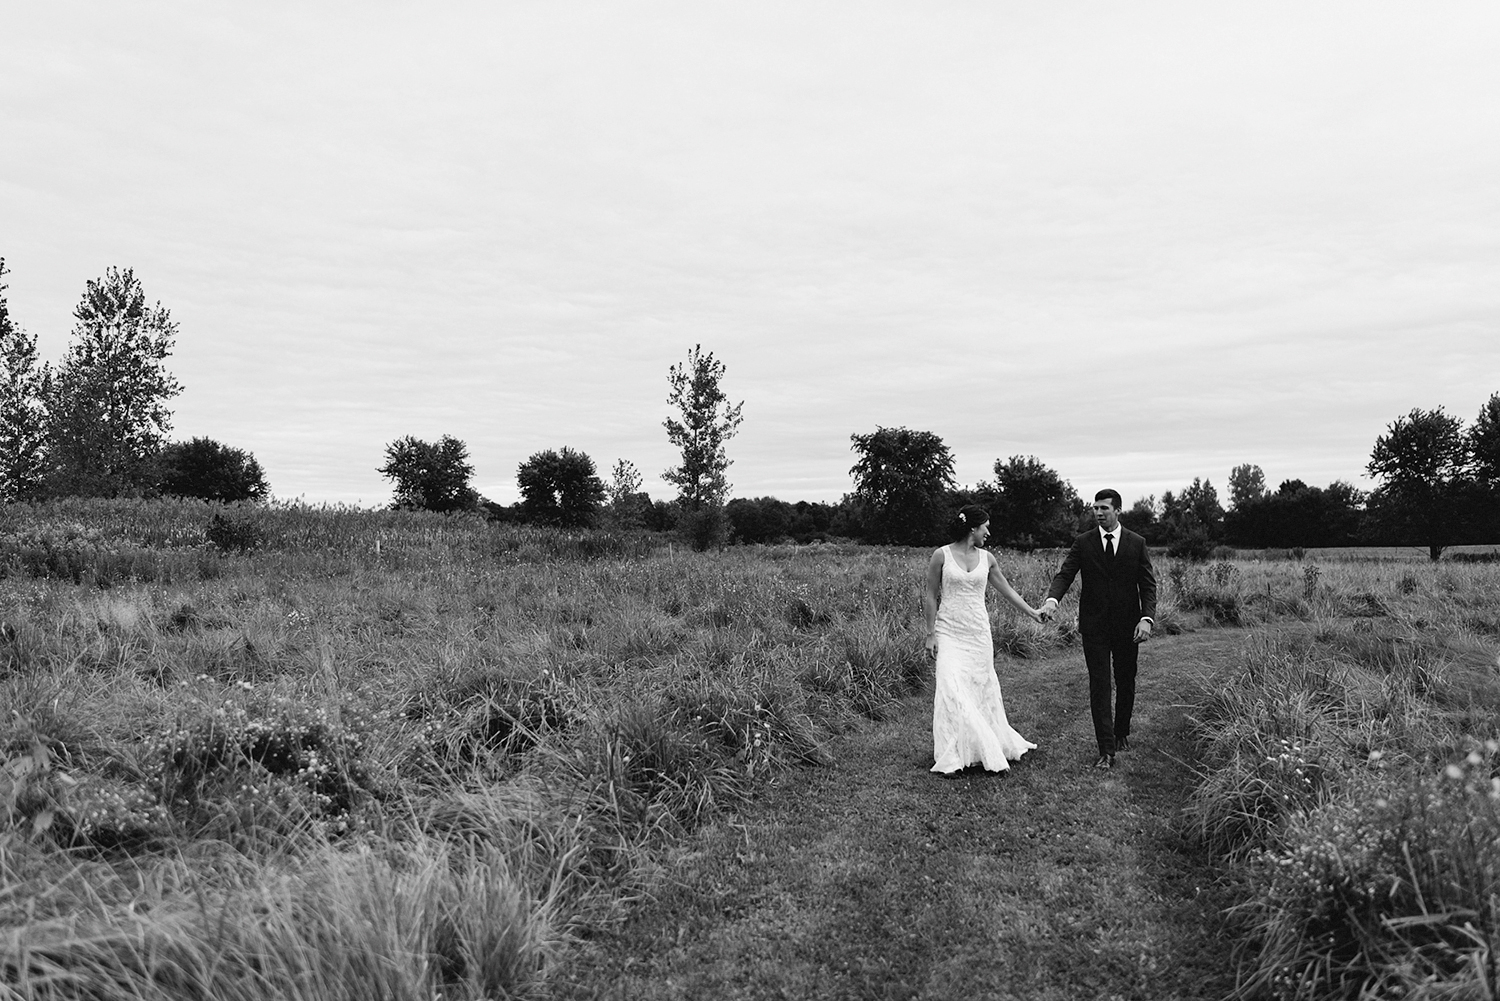 editorial-bride-and-groom-walking-field-wilderness-outdoors-romantic-moody-real-moments-photos-toronto's-best-wedding-photographers-candid-documentary-style-photography-london-ontario-wedding-inspiration.jpg